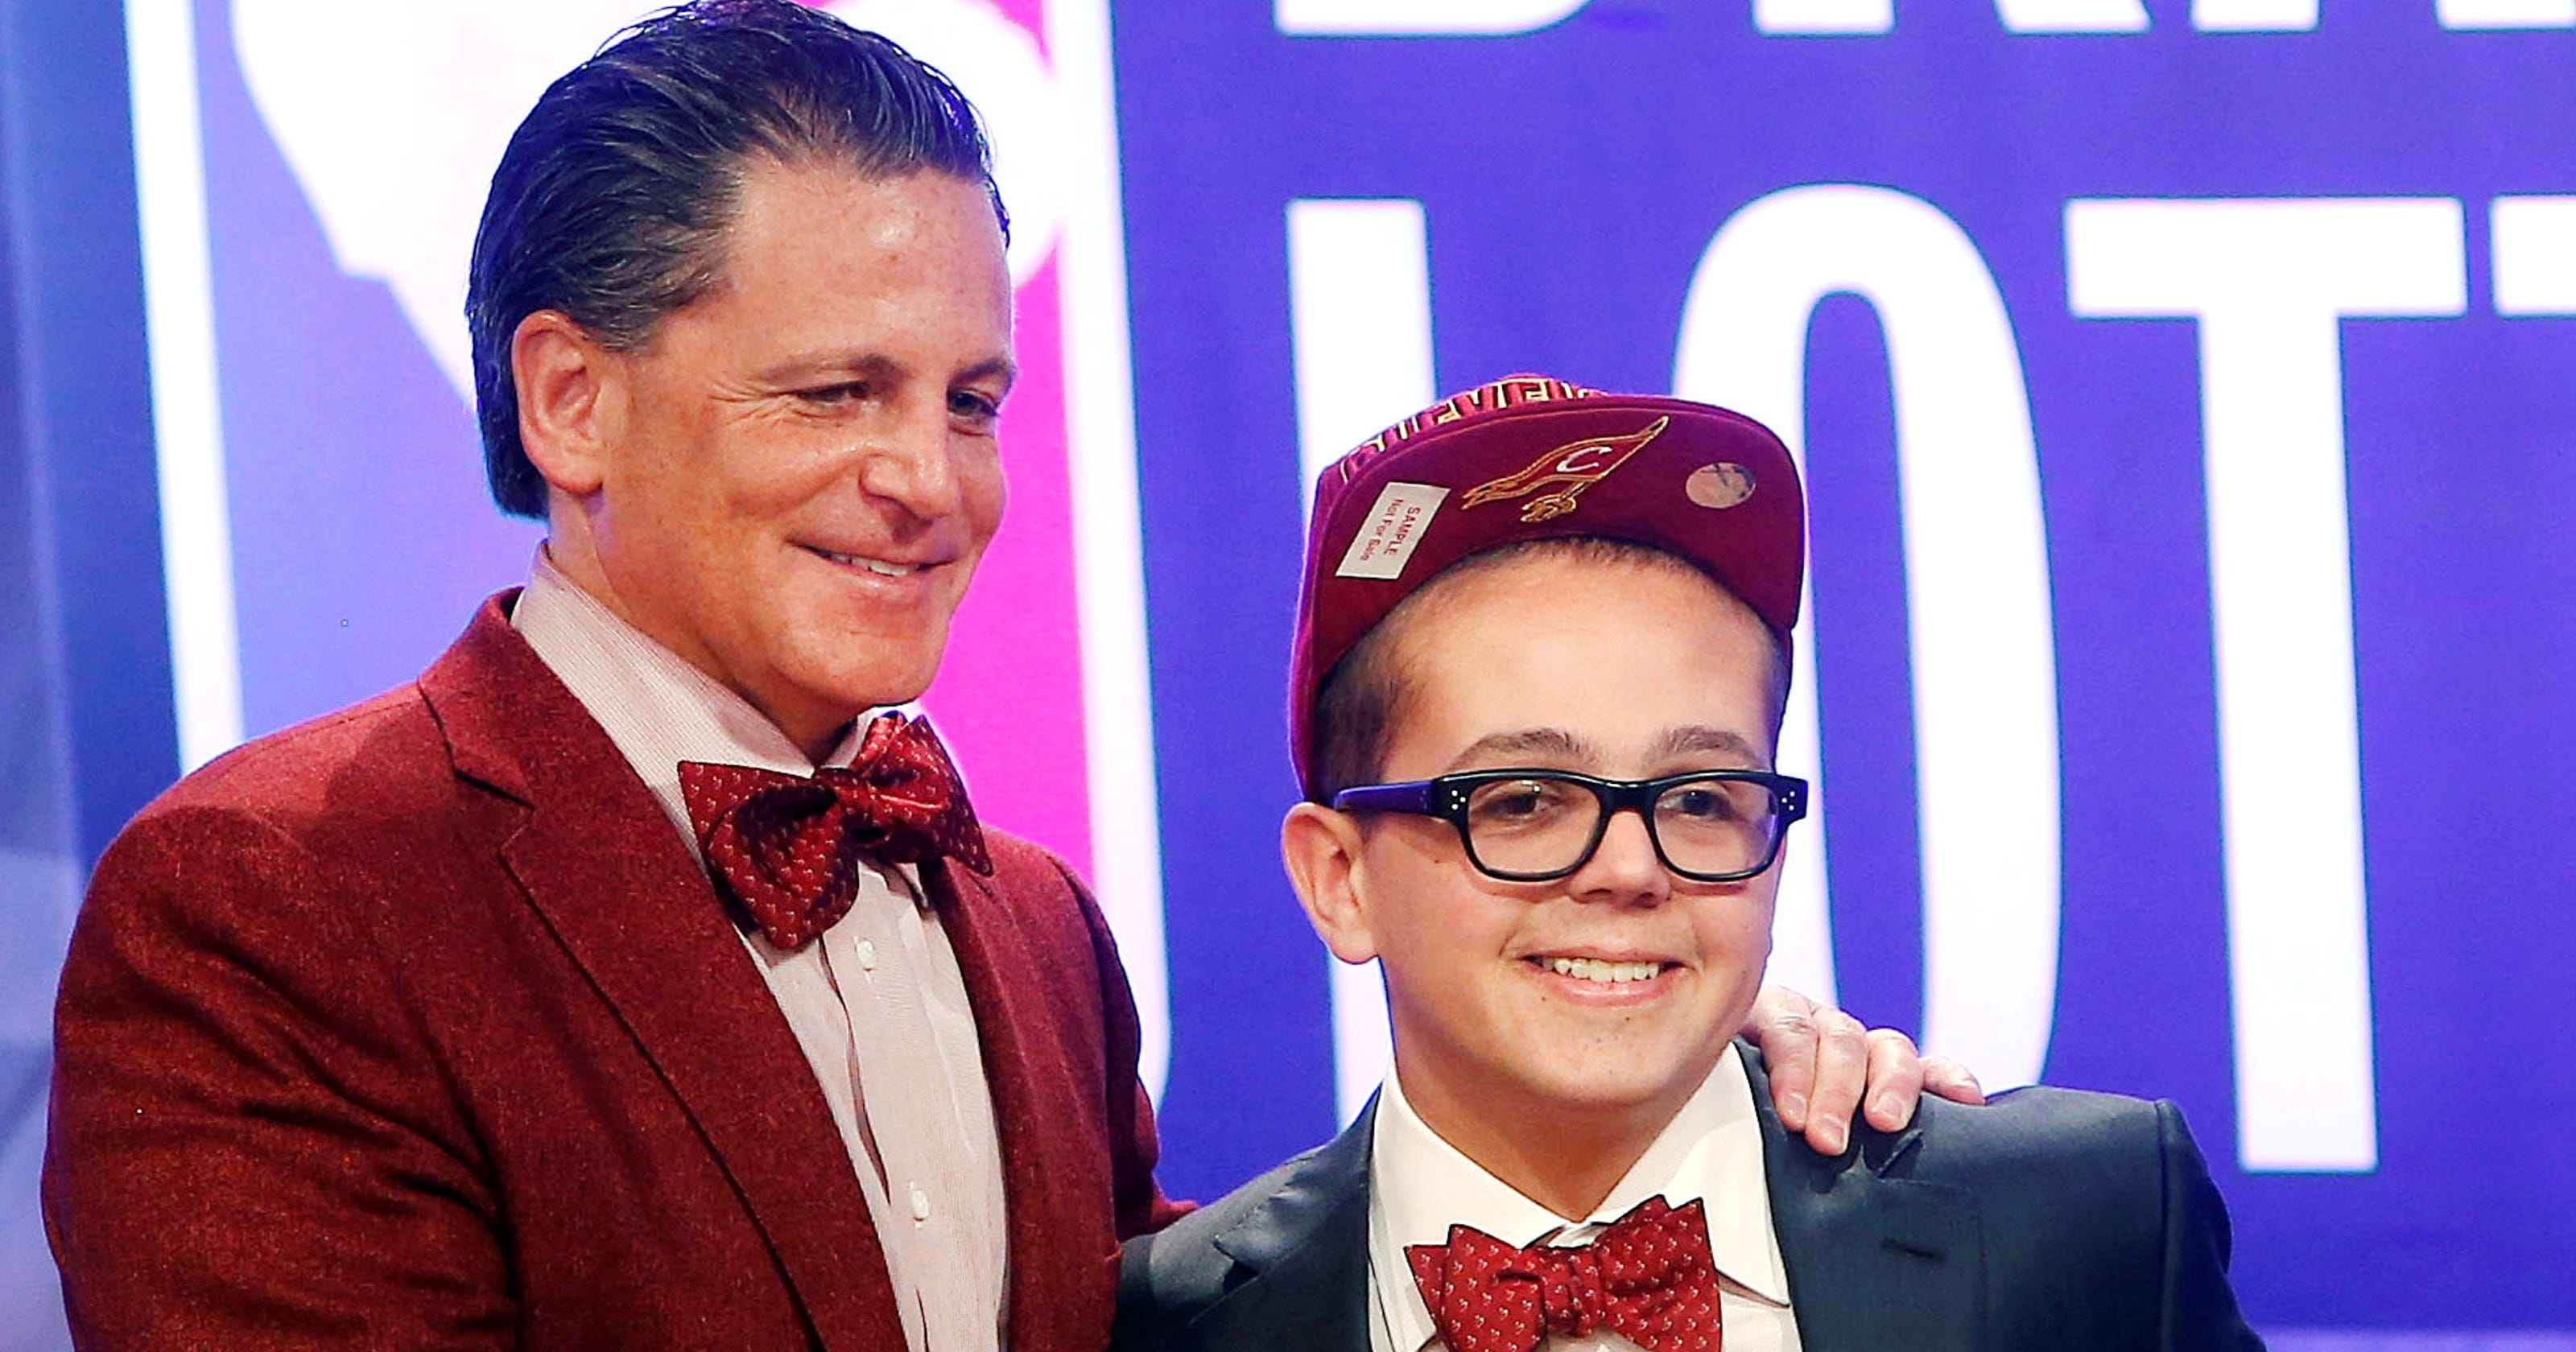 Nick and Dan Gilbert at 2011 Draft Lottery